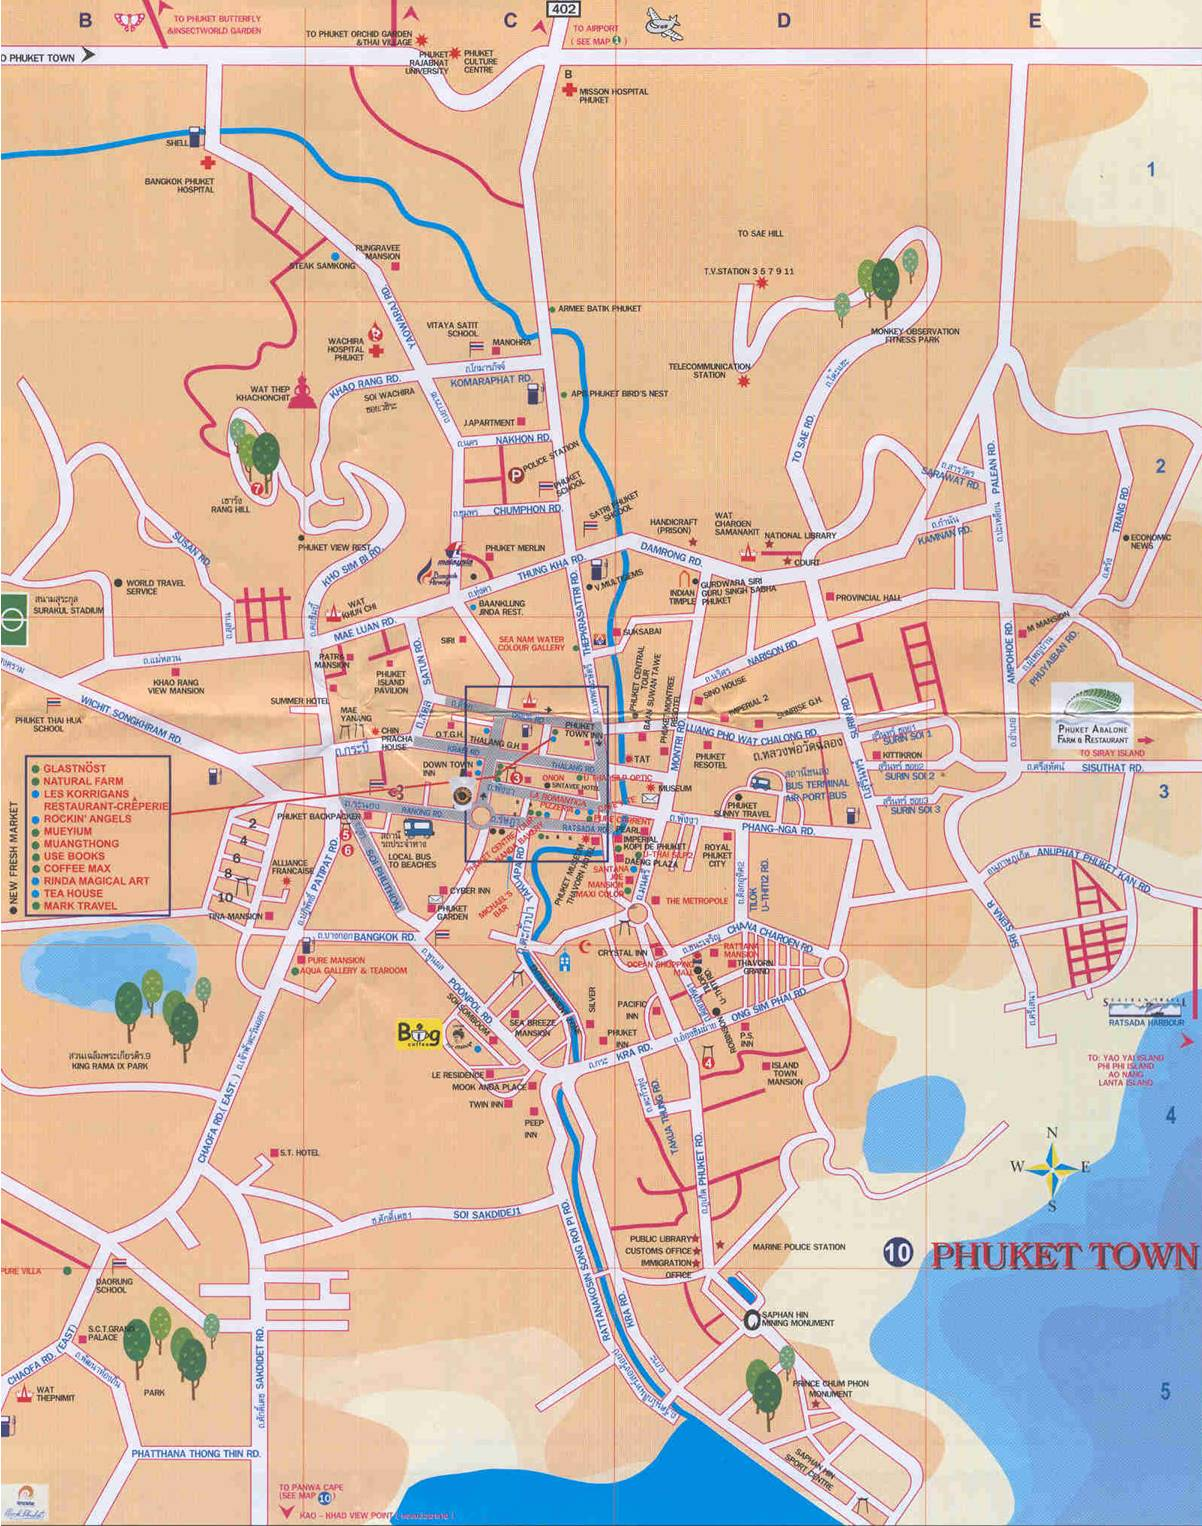 Phuket Maps Maps of Phuket Town Patong and all towns beaches